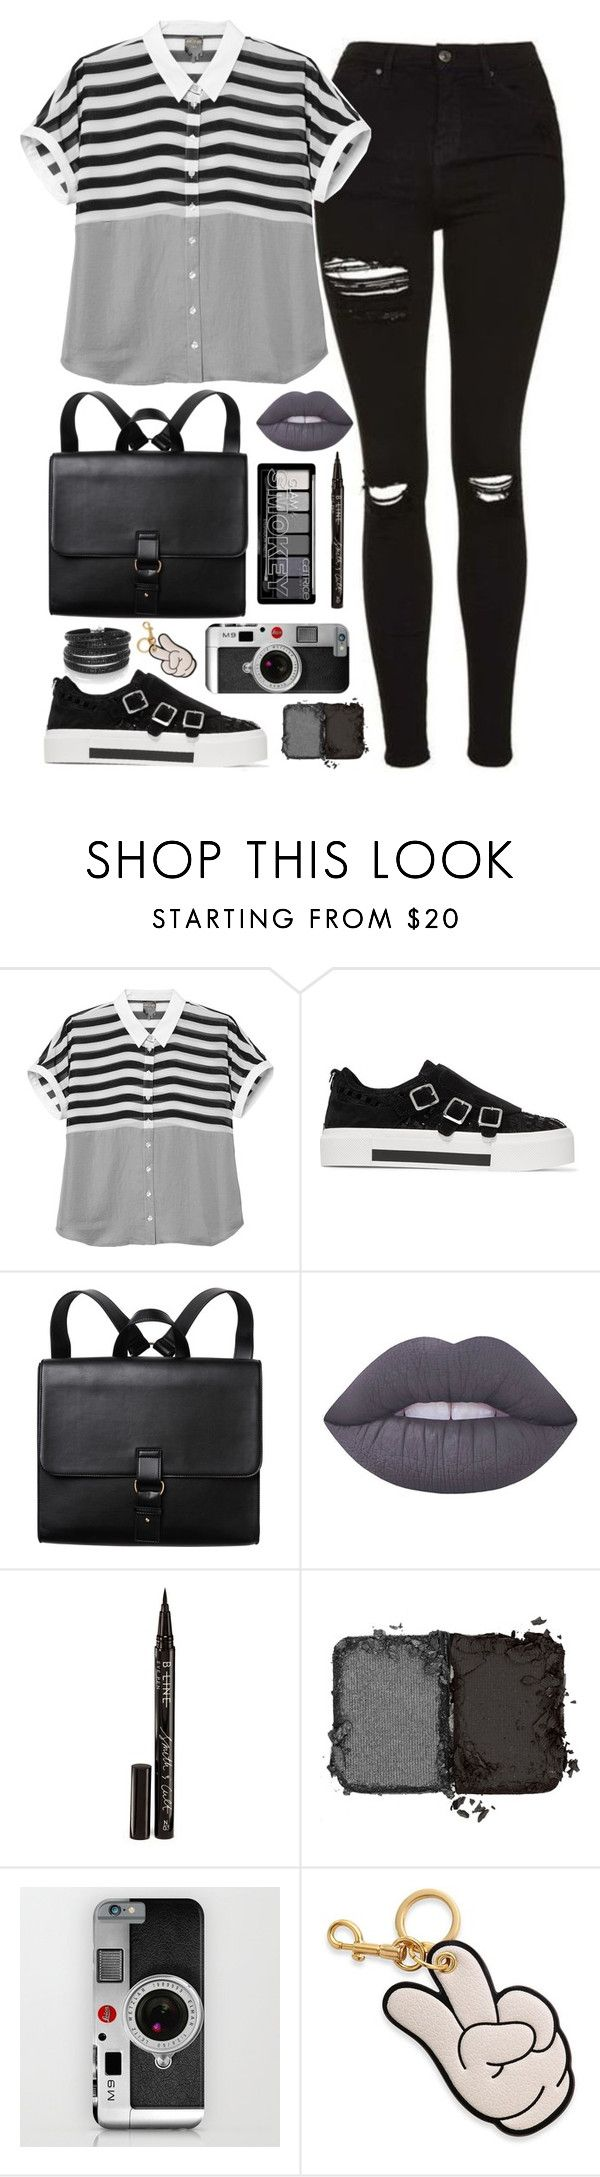 """greyscale"" by bschreiber ❤ liked on Polyvore featuring Monki, Alexander McQueen, Lime Crime, Smith & Cult, NARS Cosmetics, Anya Hindmarch and Sif Jakobs Jewellery"